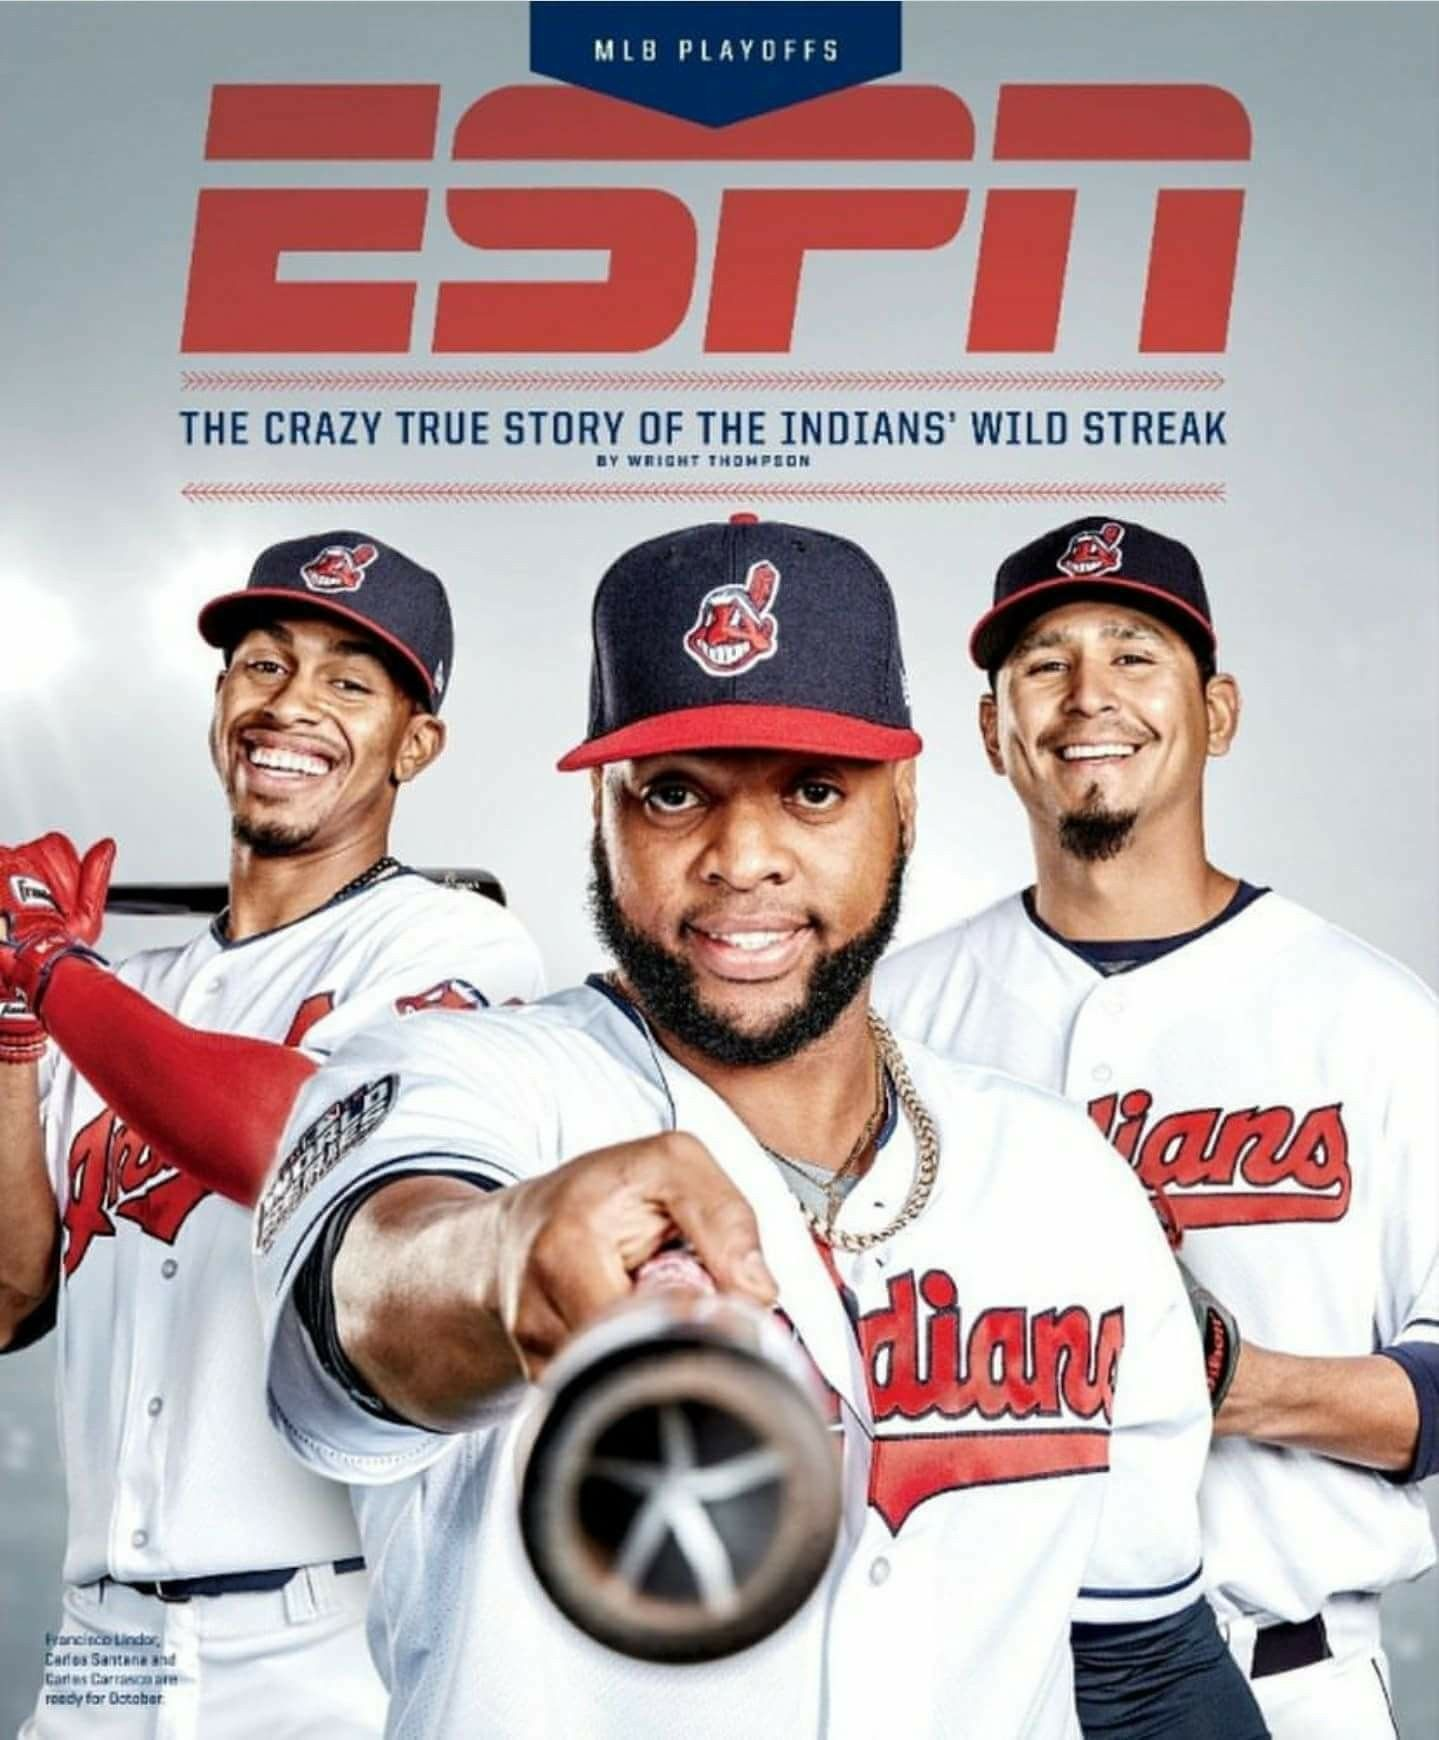 Pin by Keith Thomas on My Sports Cleveland indians, Espn